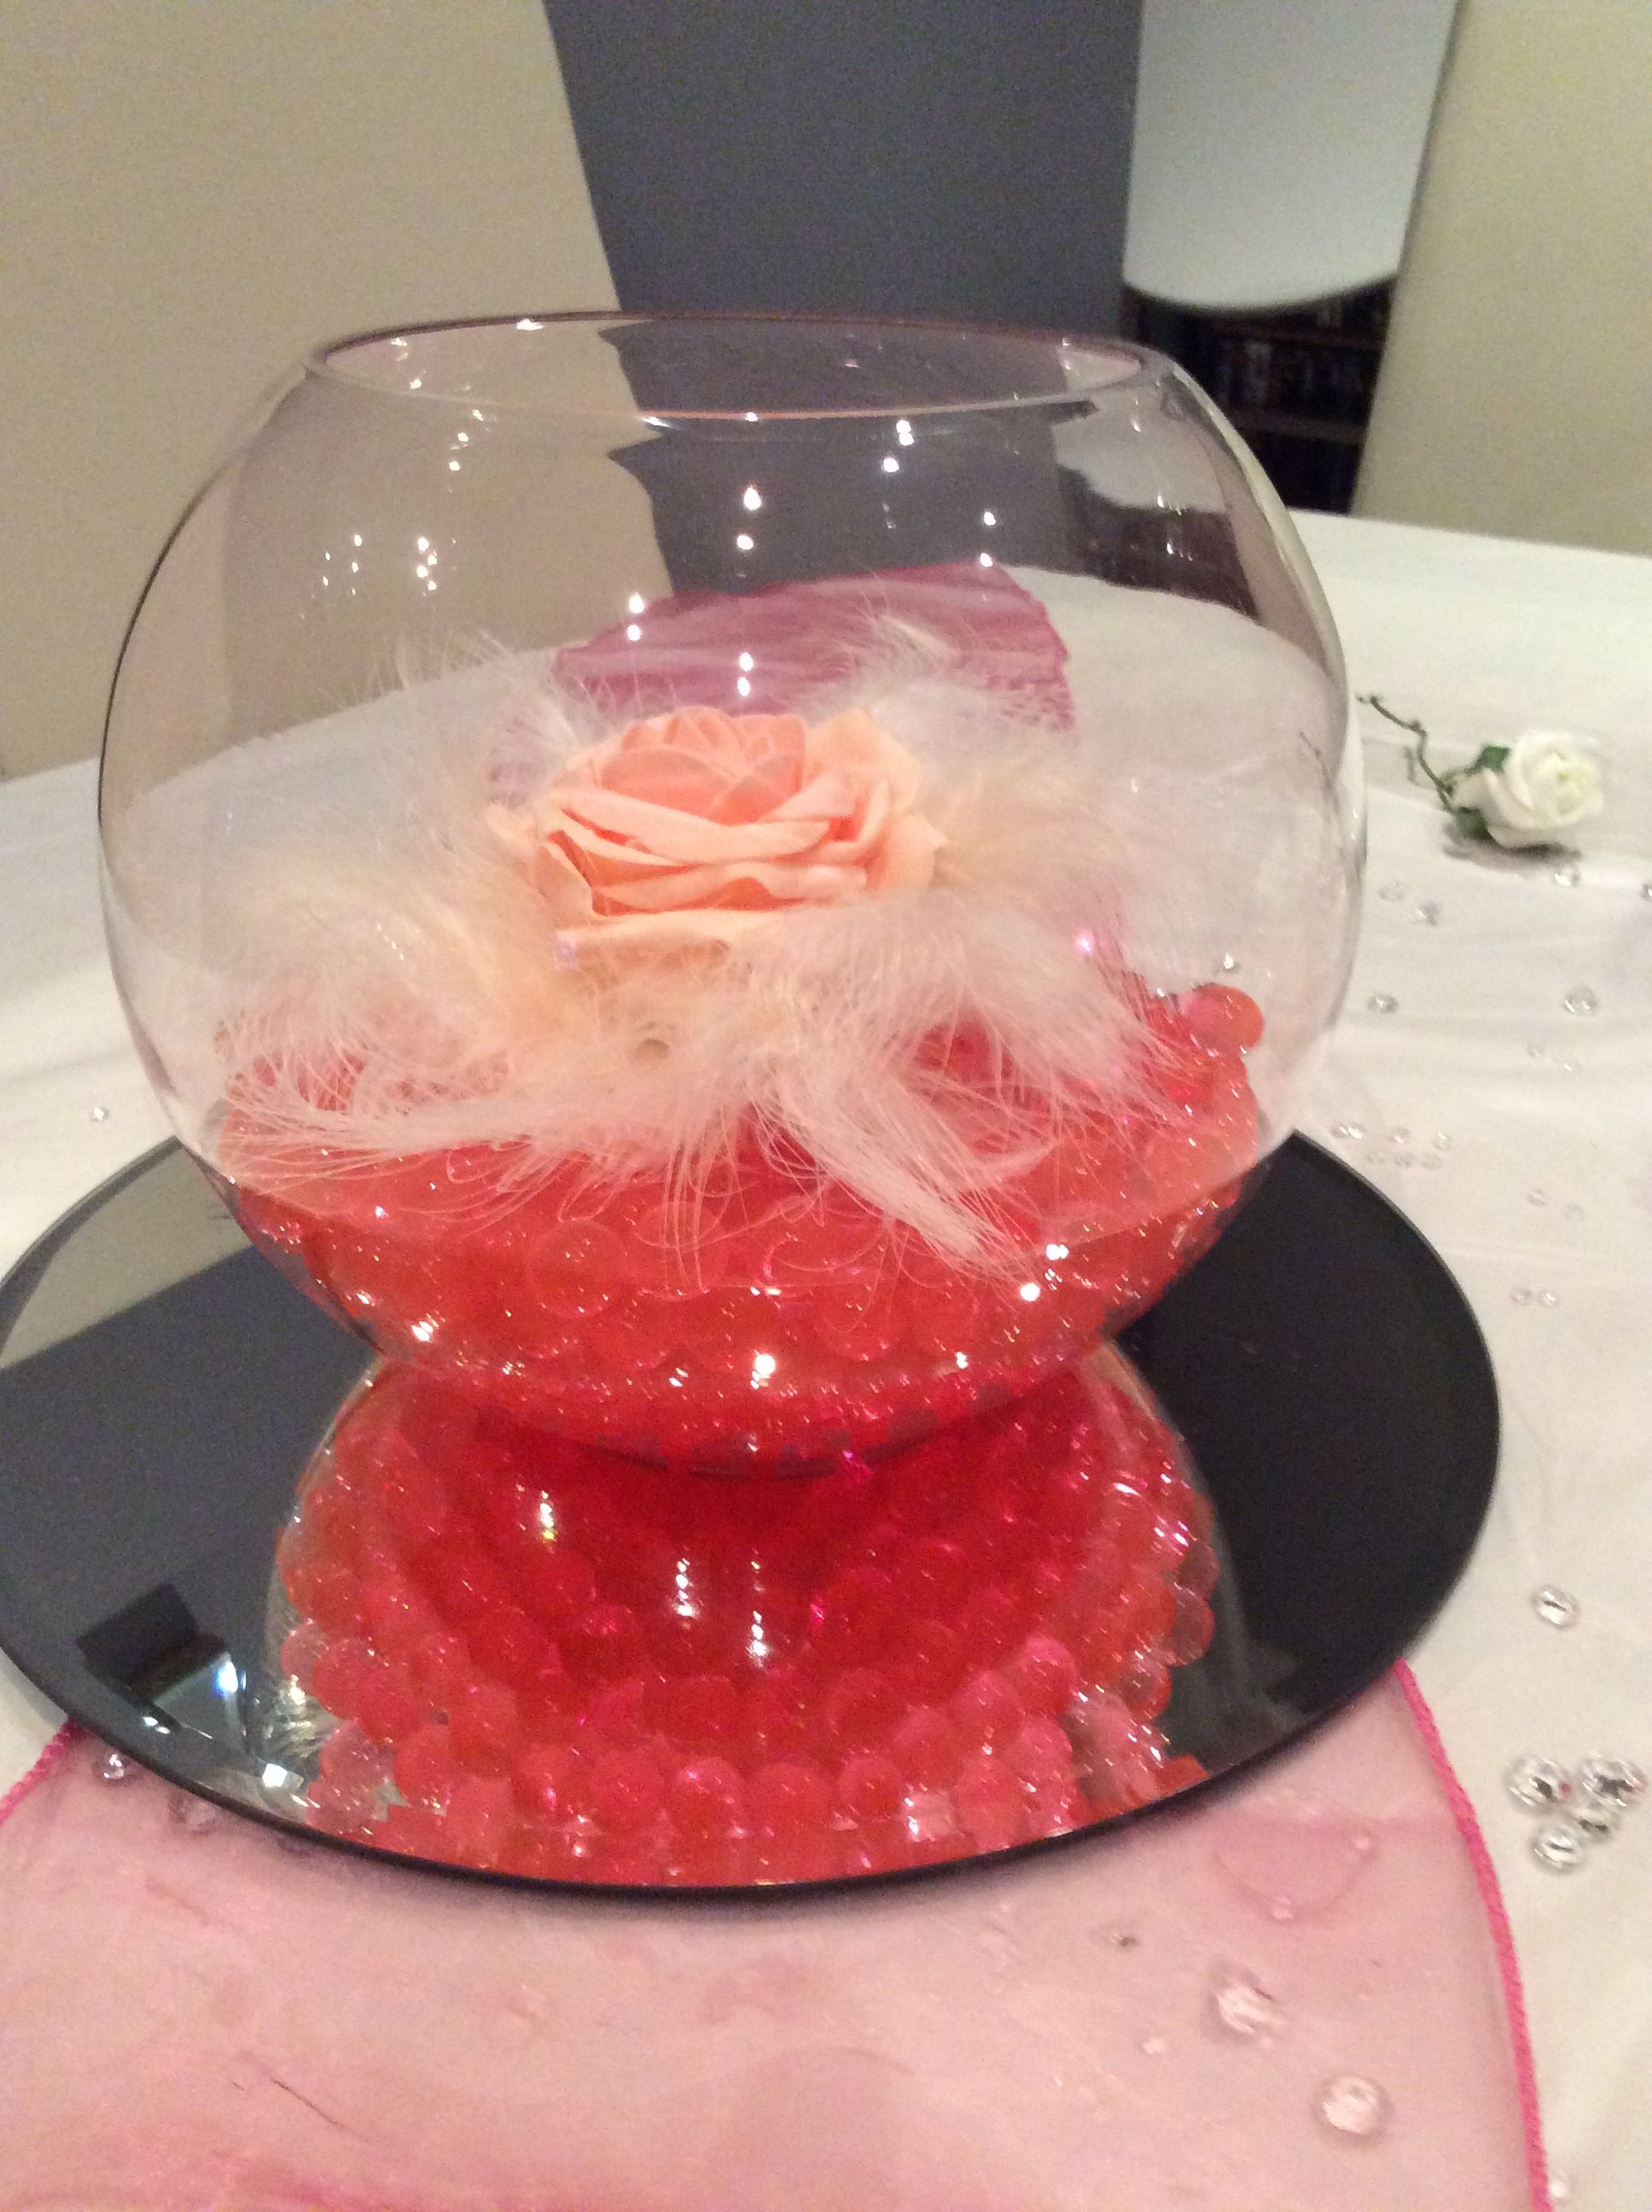 Fish Bowl Wedding Centrepiece For Pink Themed Weddings Hot Pink Beads Light Pink Rose And Feathers Avai Feather Centerpieces Pink Wedding Theme Wedding Hire